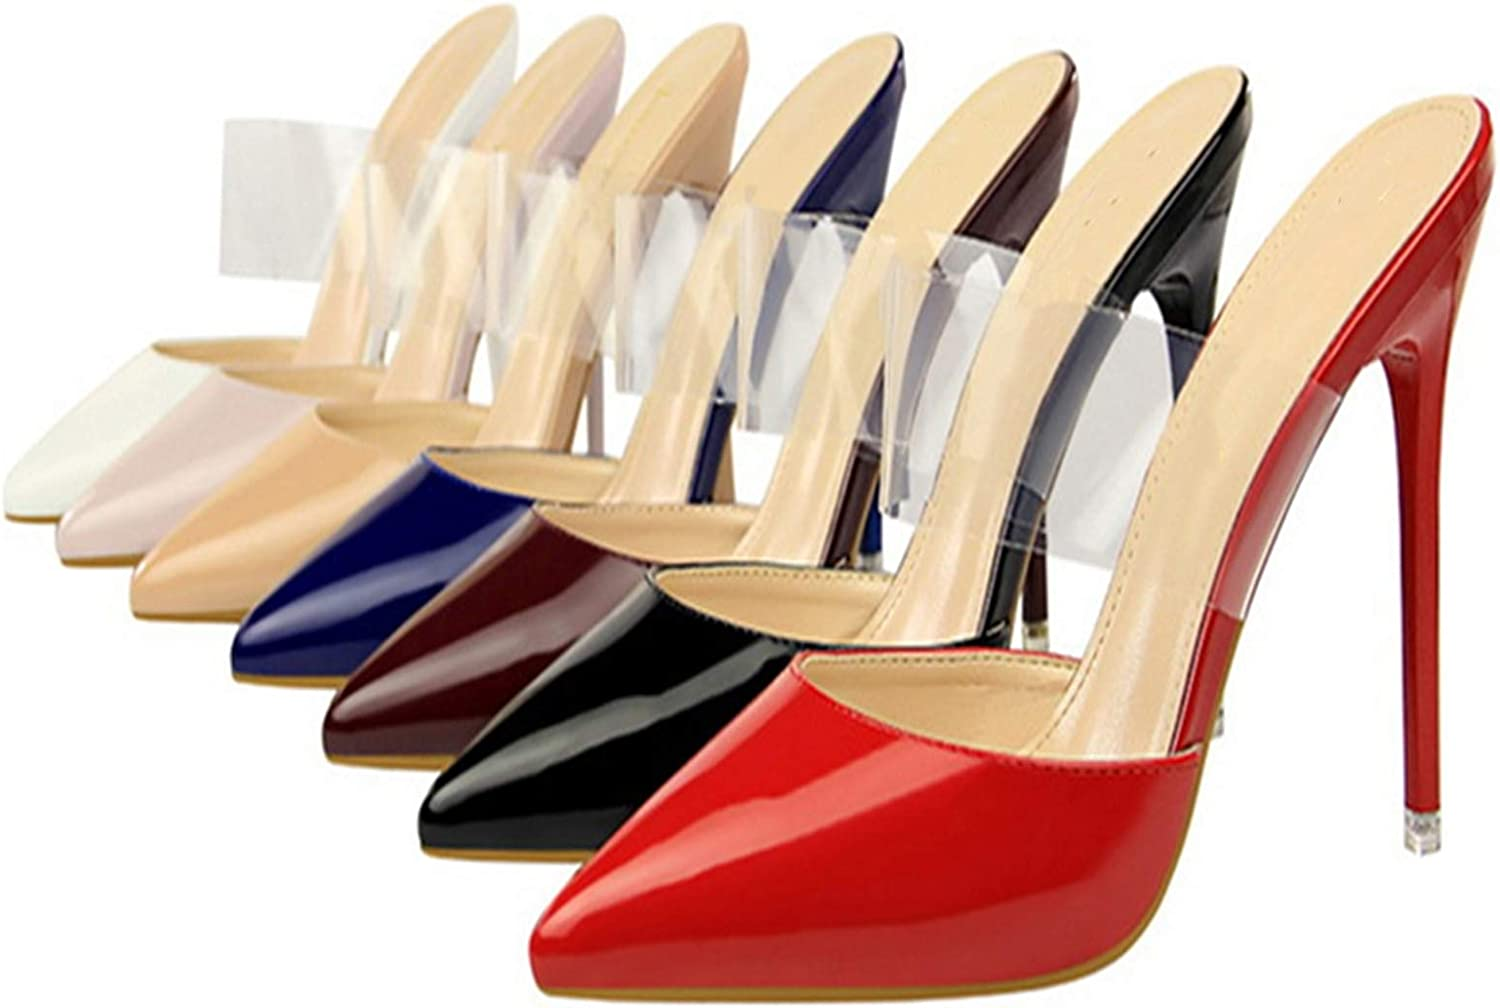 Richealnana Women's Pointy Closed Toe High Stiletto Heels Clear Ankle Straps Pumps Slide Backless Sandals